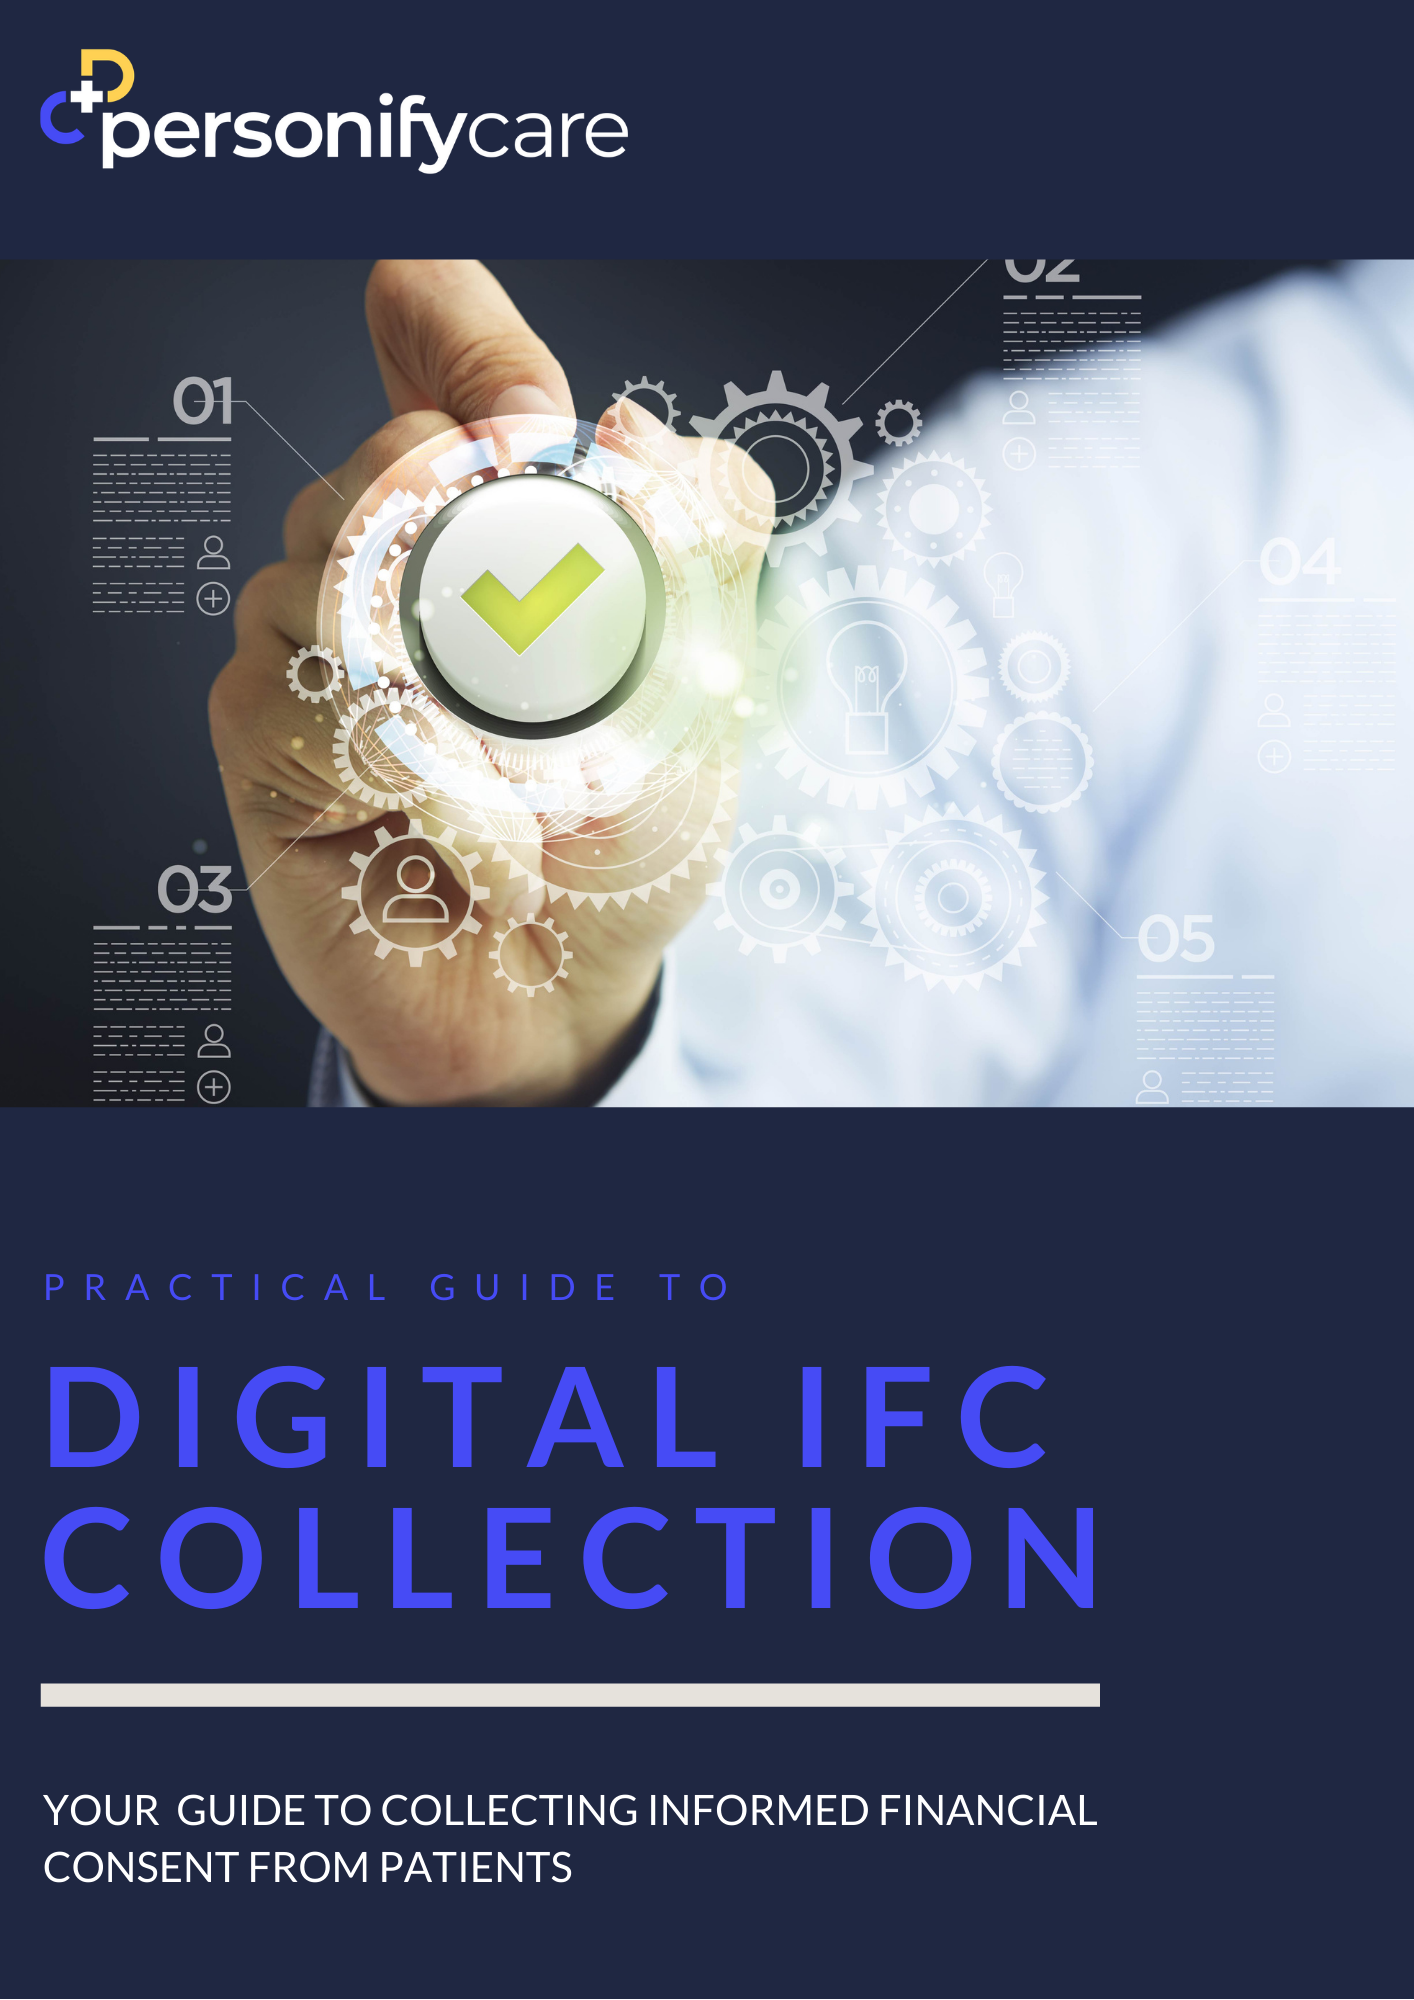 Practical Guide to Digital IFC Collection Guide Cover